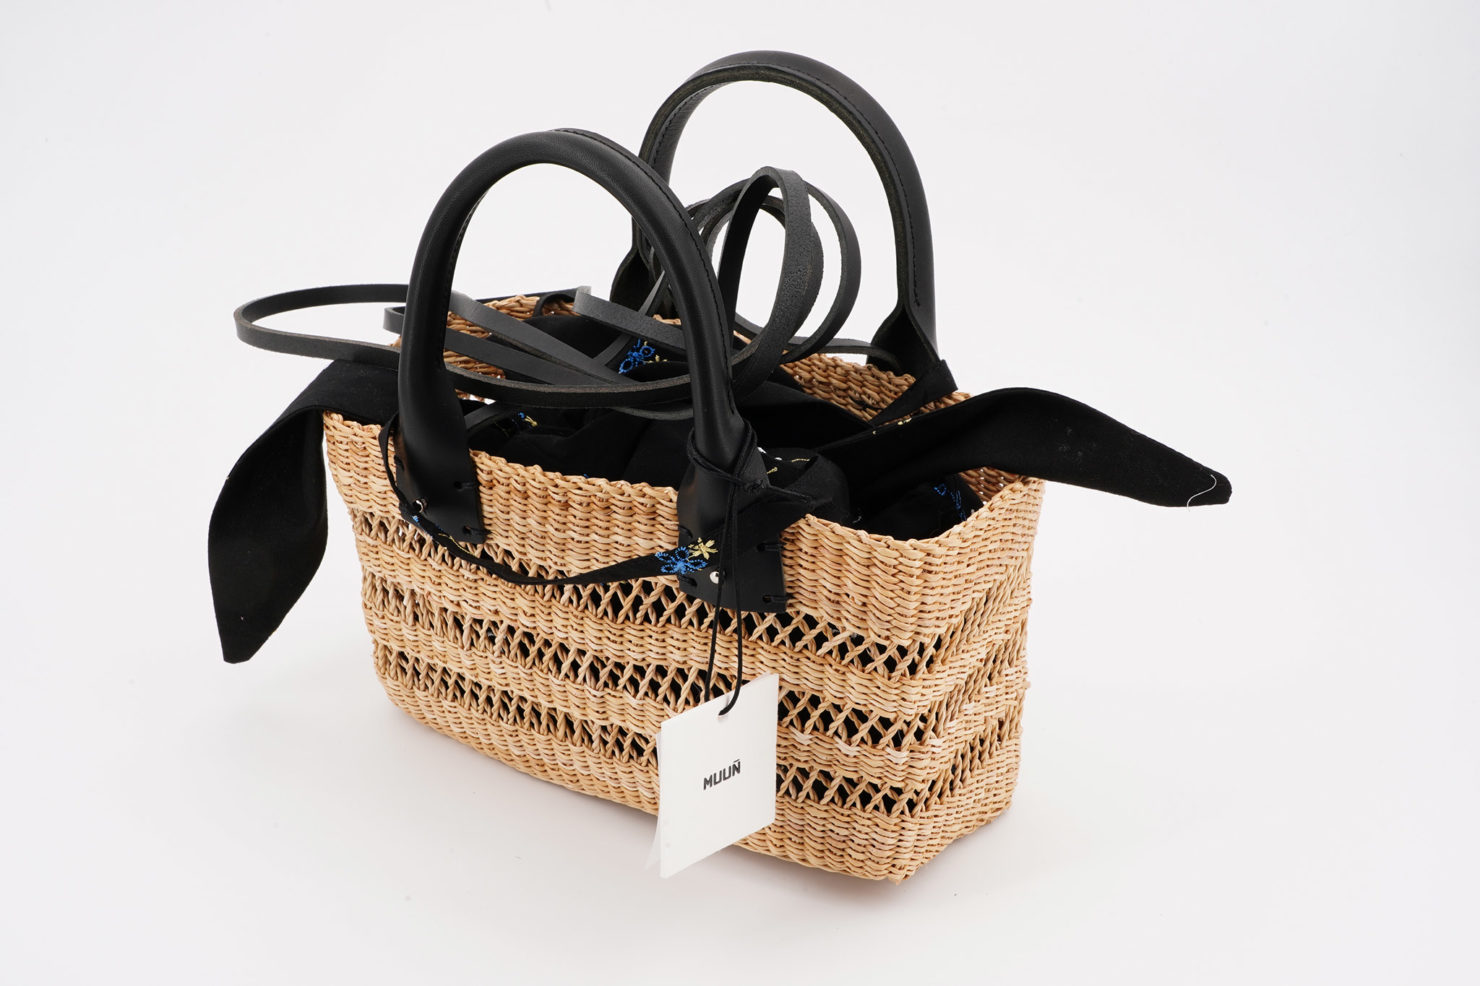 MINI CHARLOTTE FLORA STRAW BAG WITH REMOVABLE POUCH MUUN